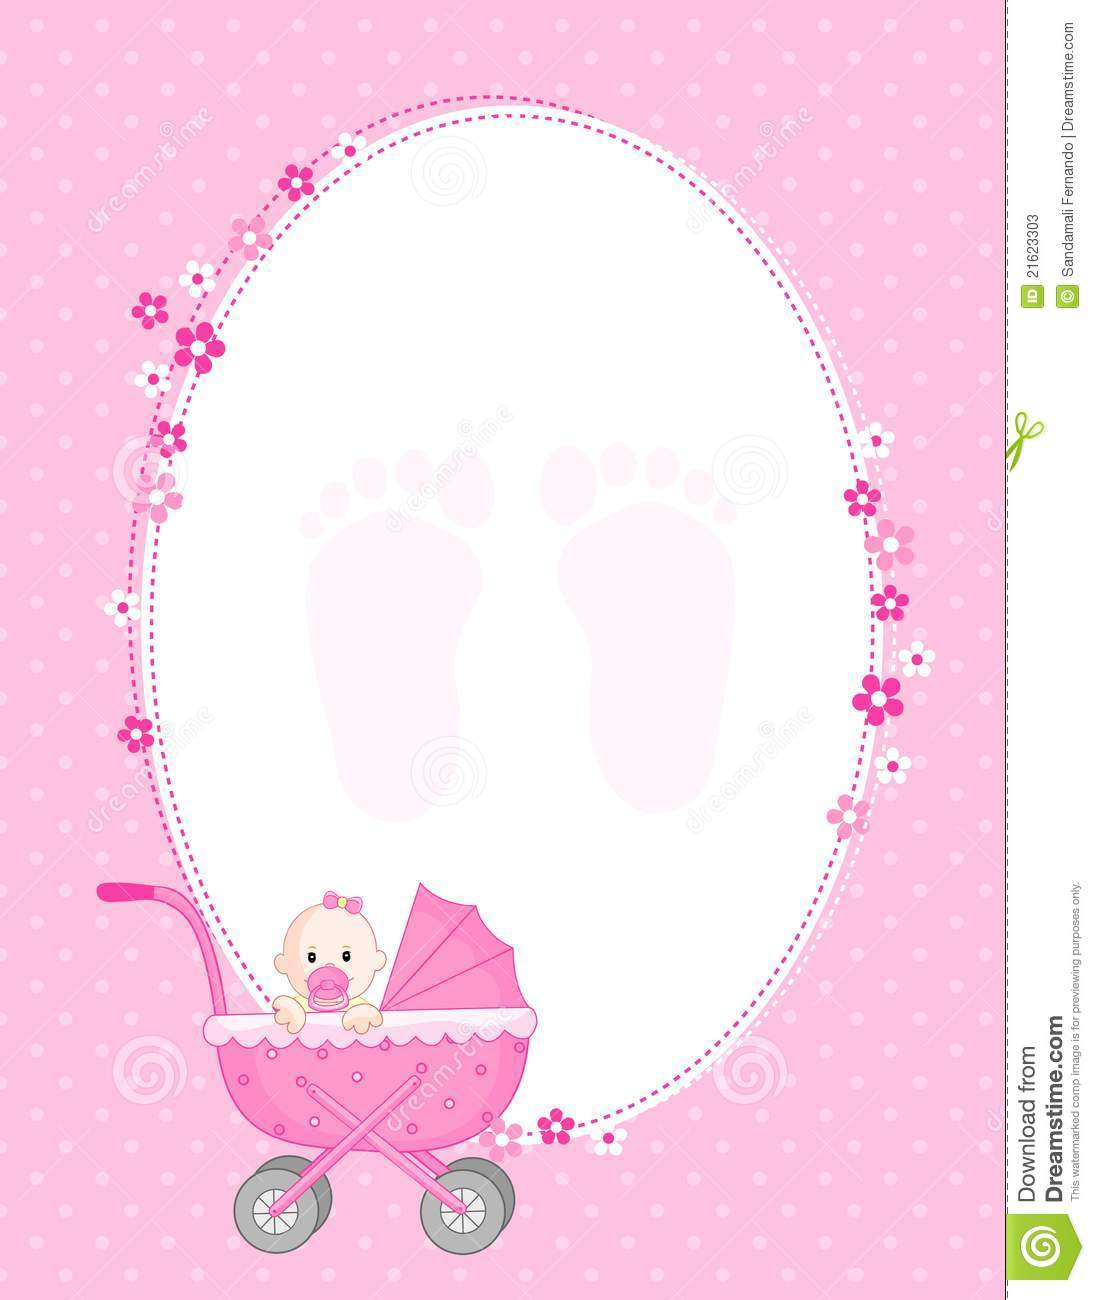 Baby girl arrival stock vector. Illustration of child ...